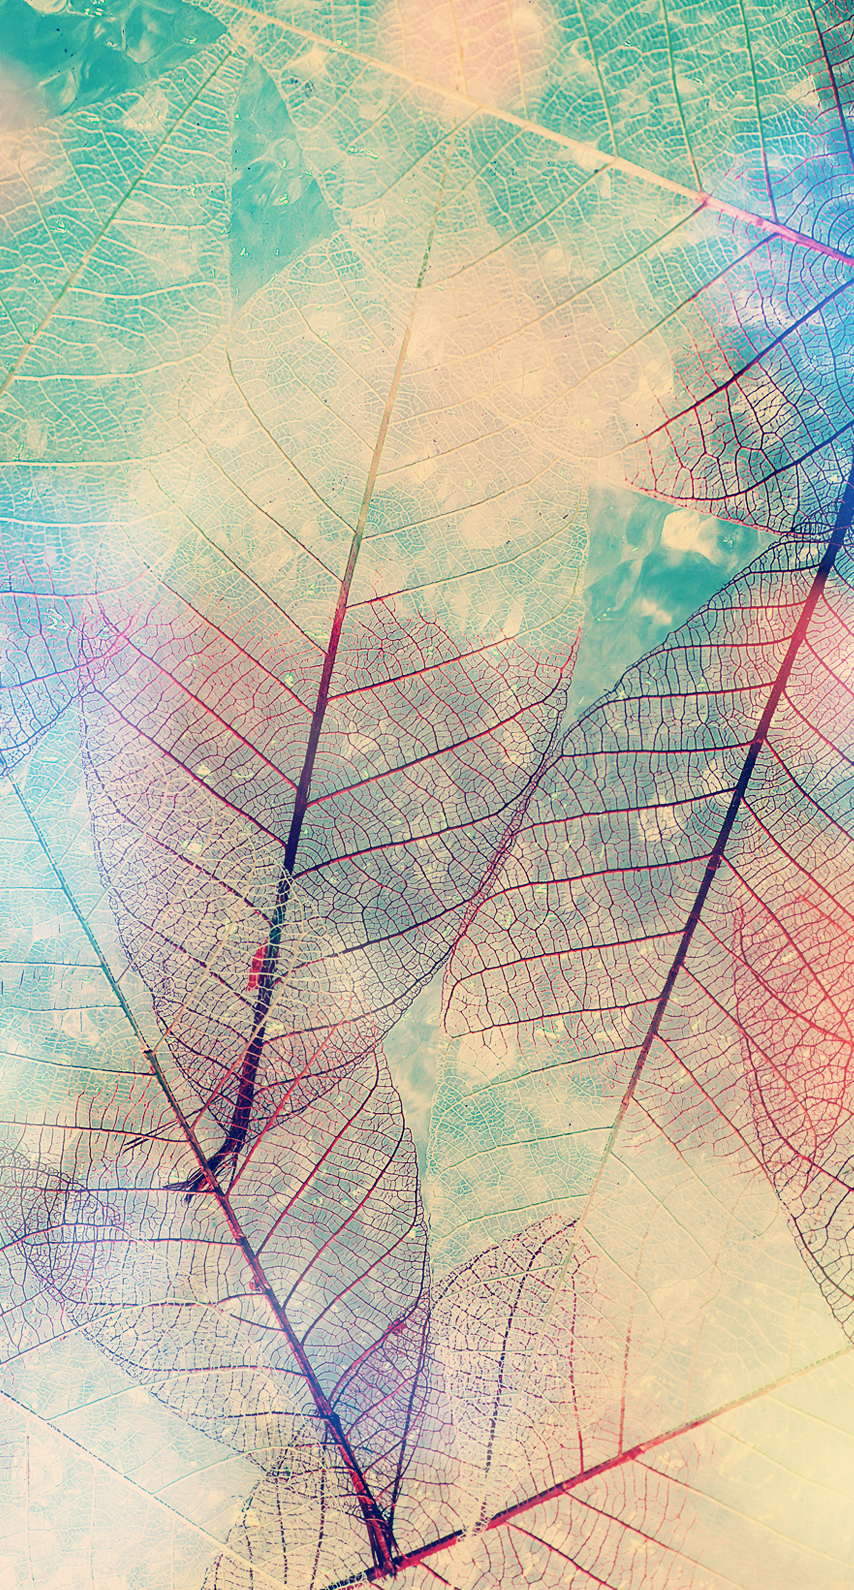 leaf, abstract